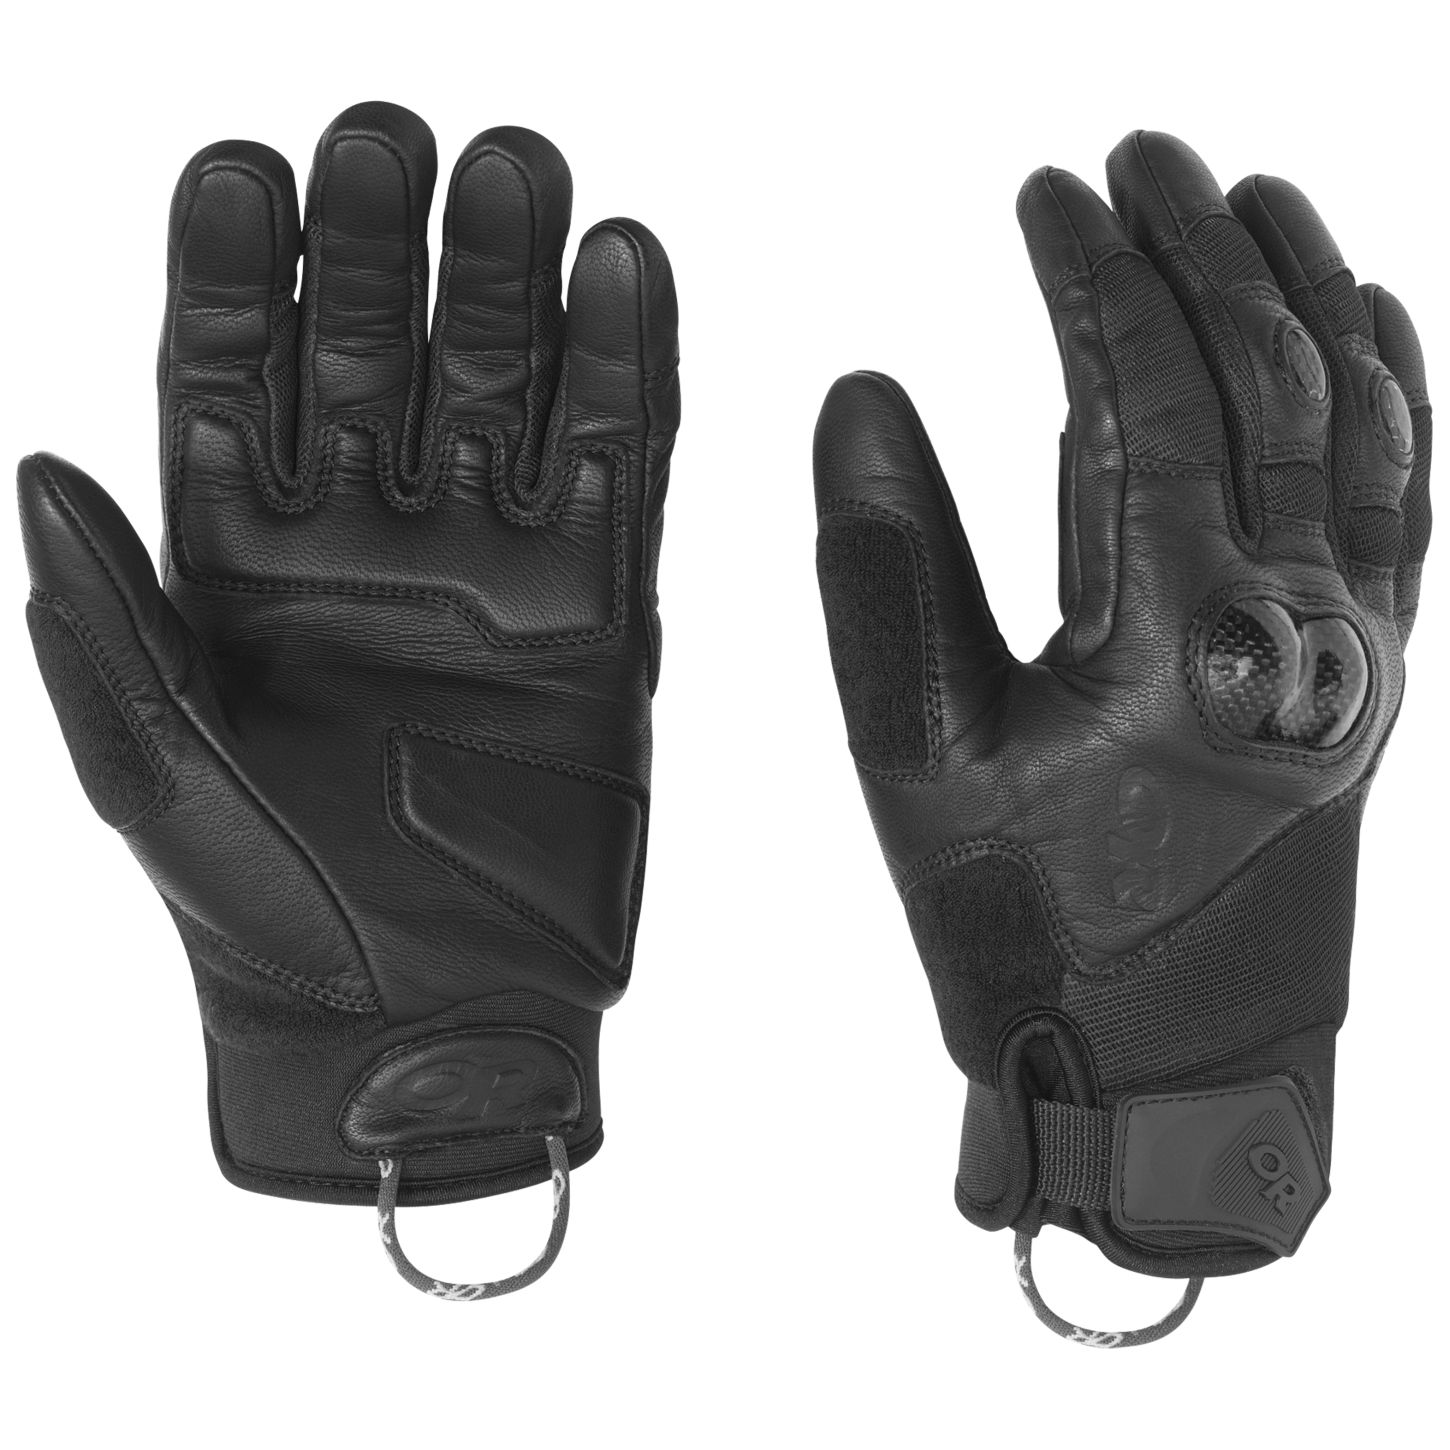 Outdoor Research Piledriver Gloves all black-30